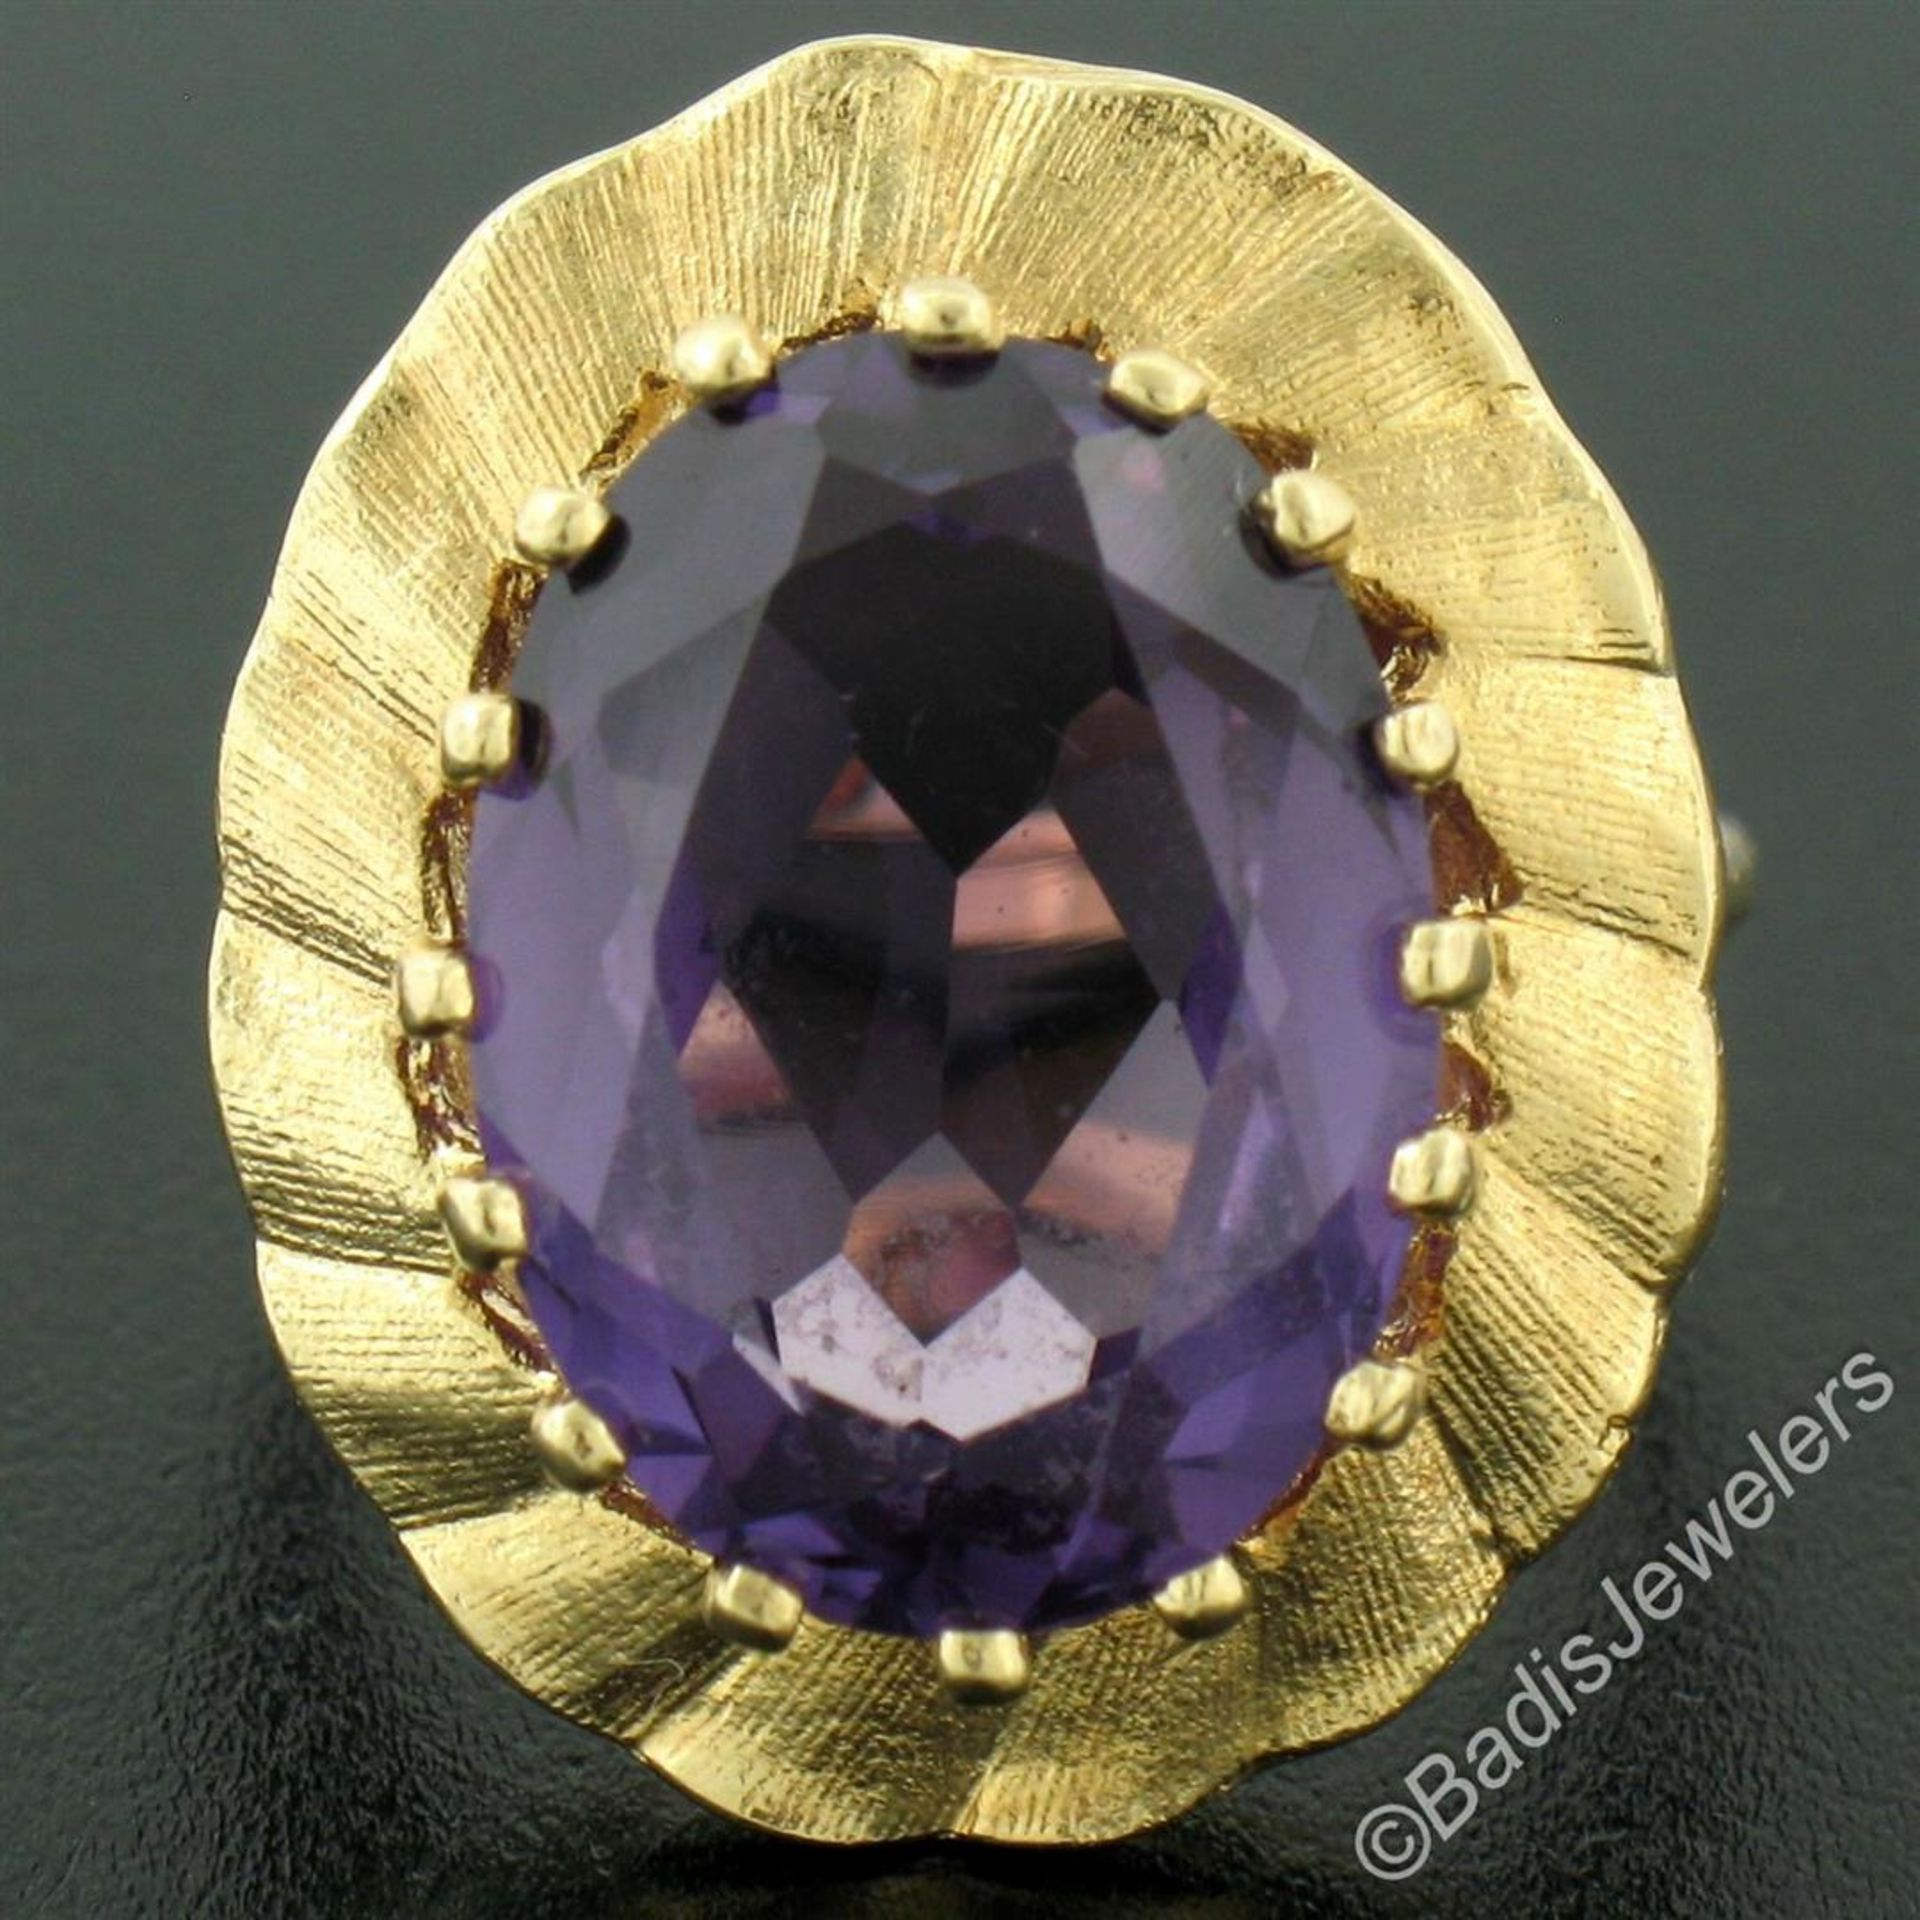 Vintage 14kt Yellow Gold Oval Synthetic Alexandrite Ring w/ Textured Halo - Image 4 of 9